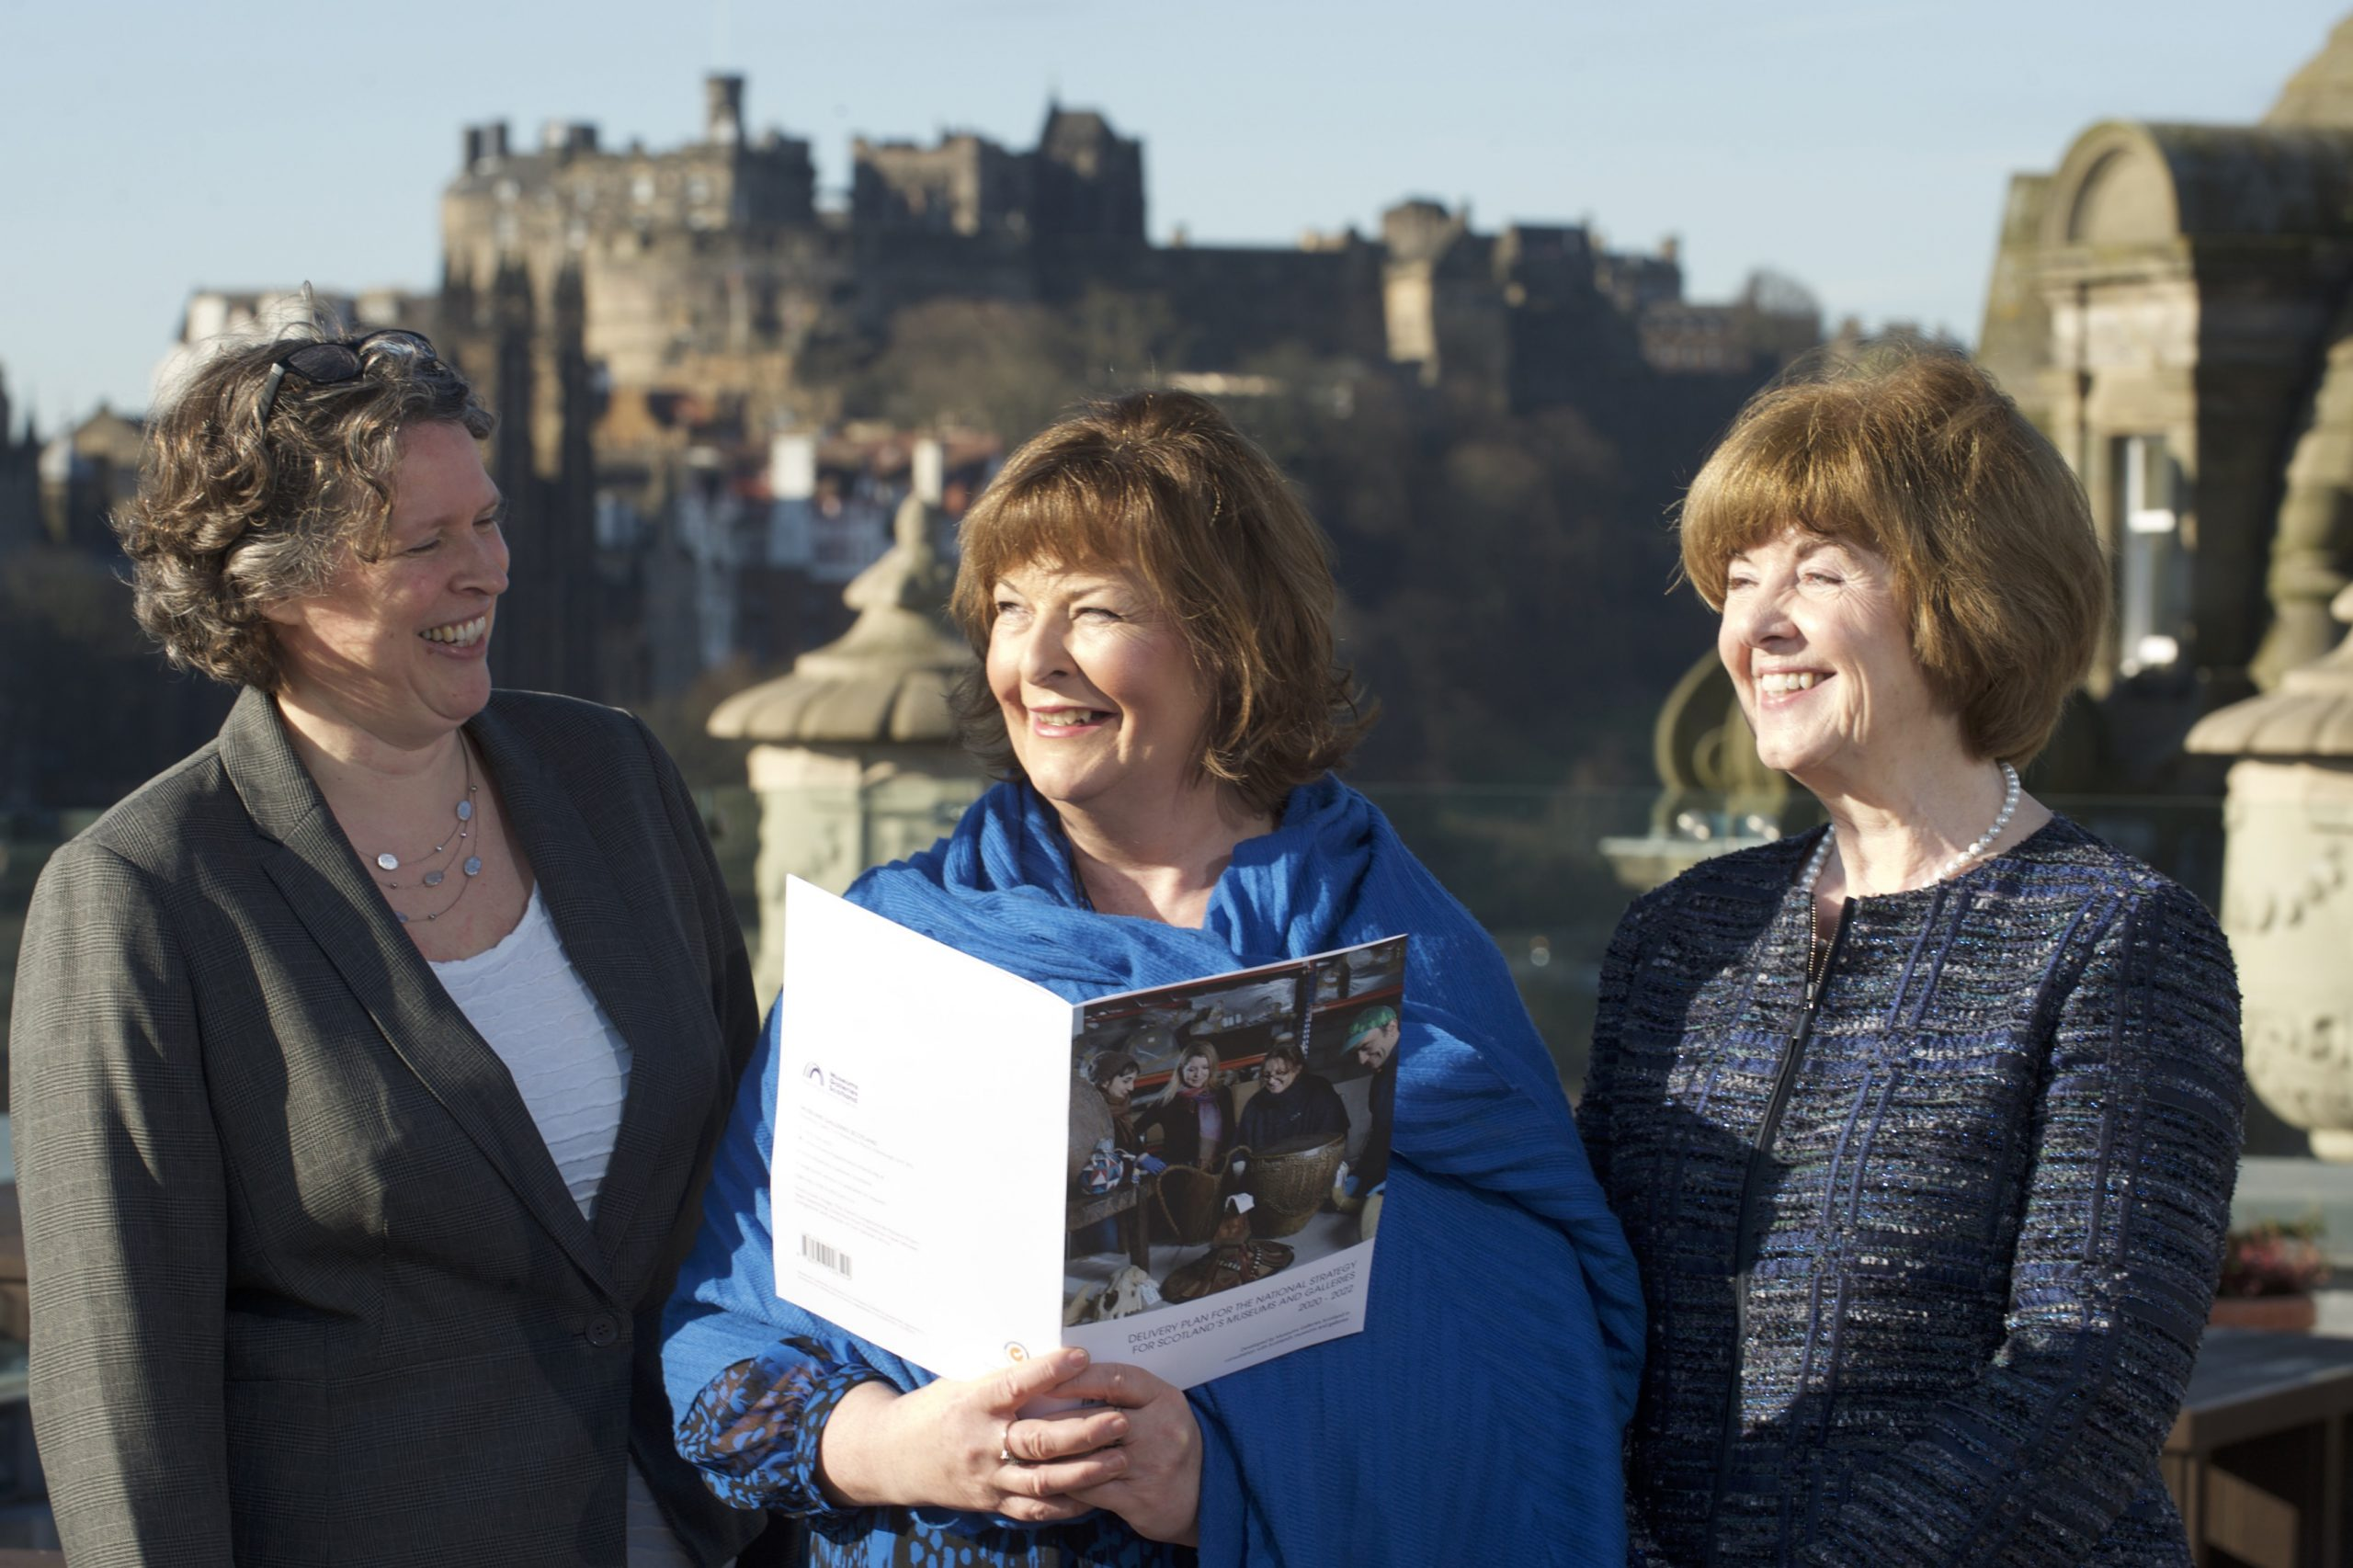 Lucy Casot, Fiona Hyslop and Ray Macfarlane